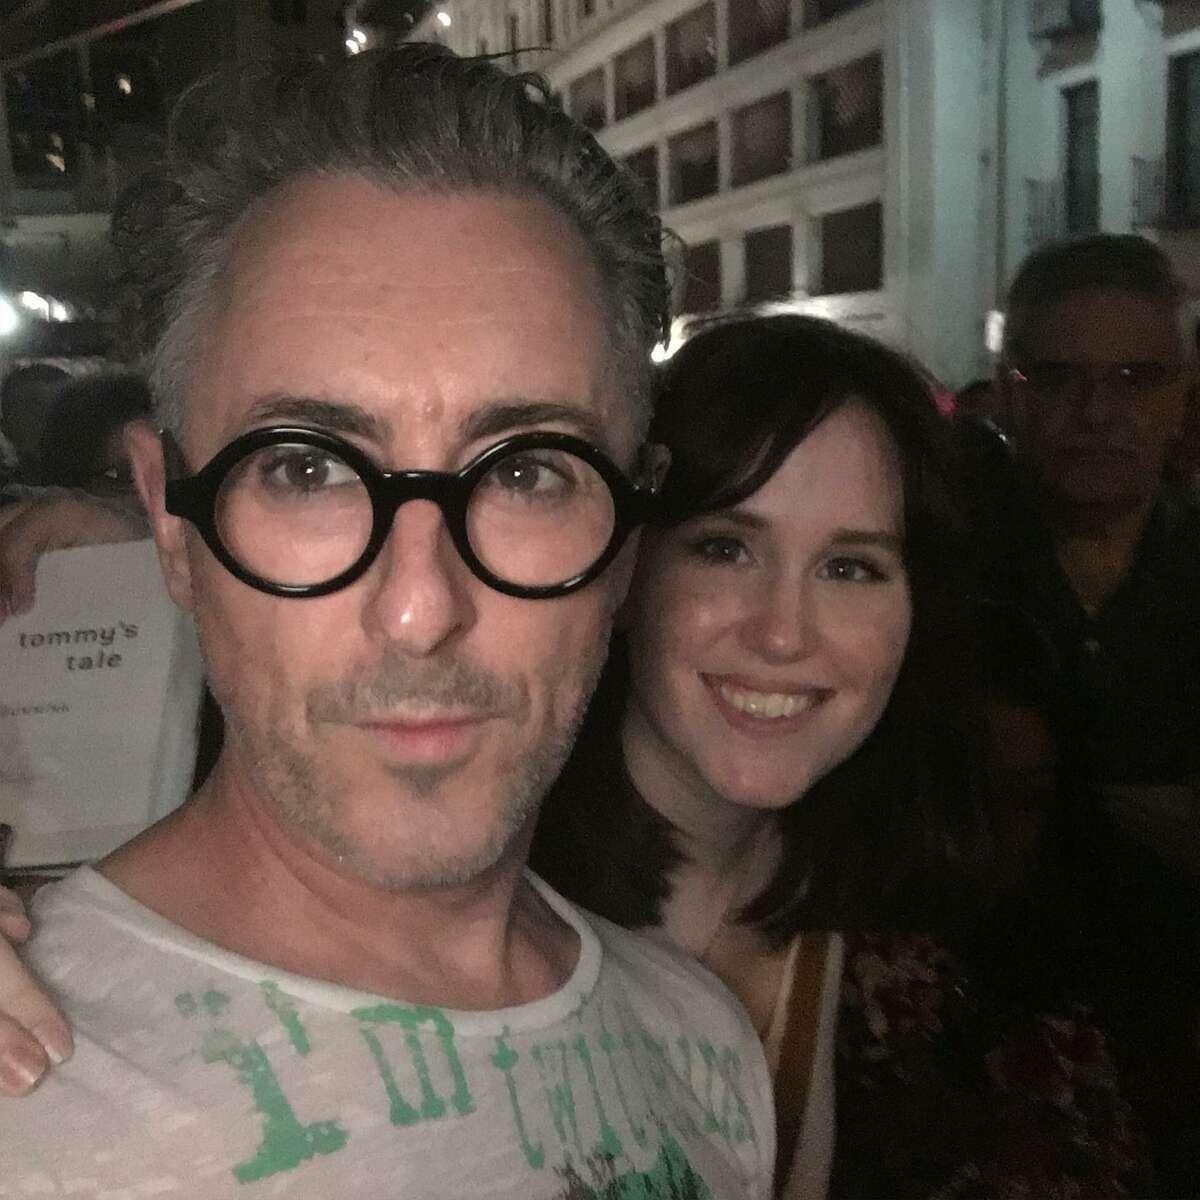 Jessica Roberts got a selfie with Alan Cumming when he performed at the Majestic Theatre.